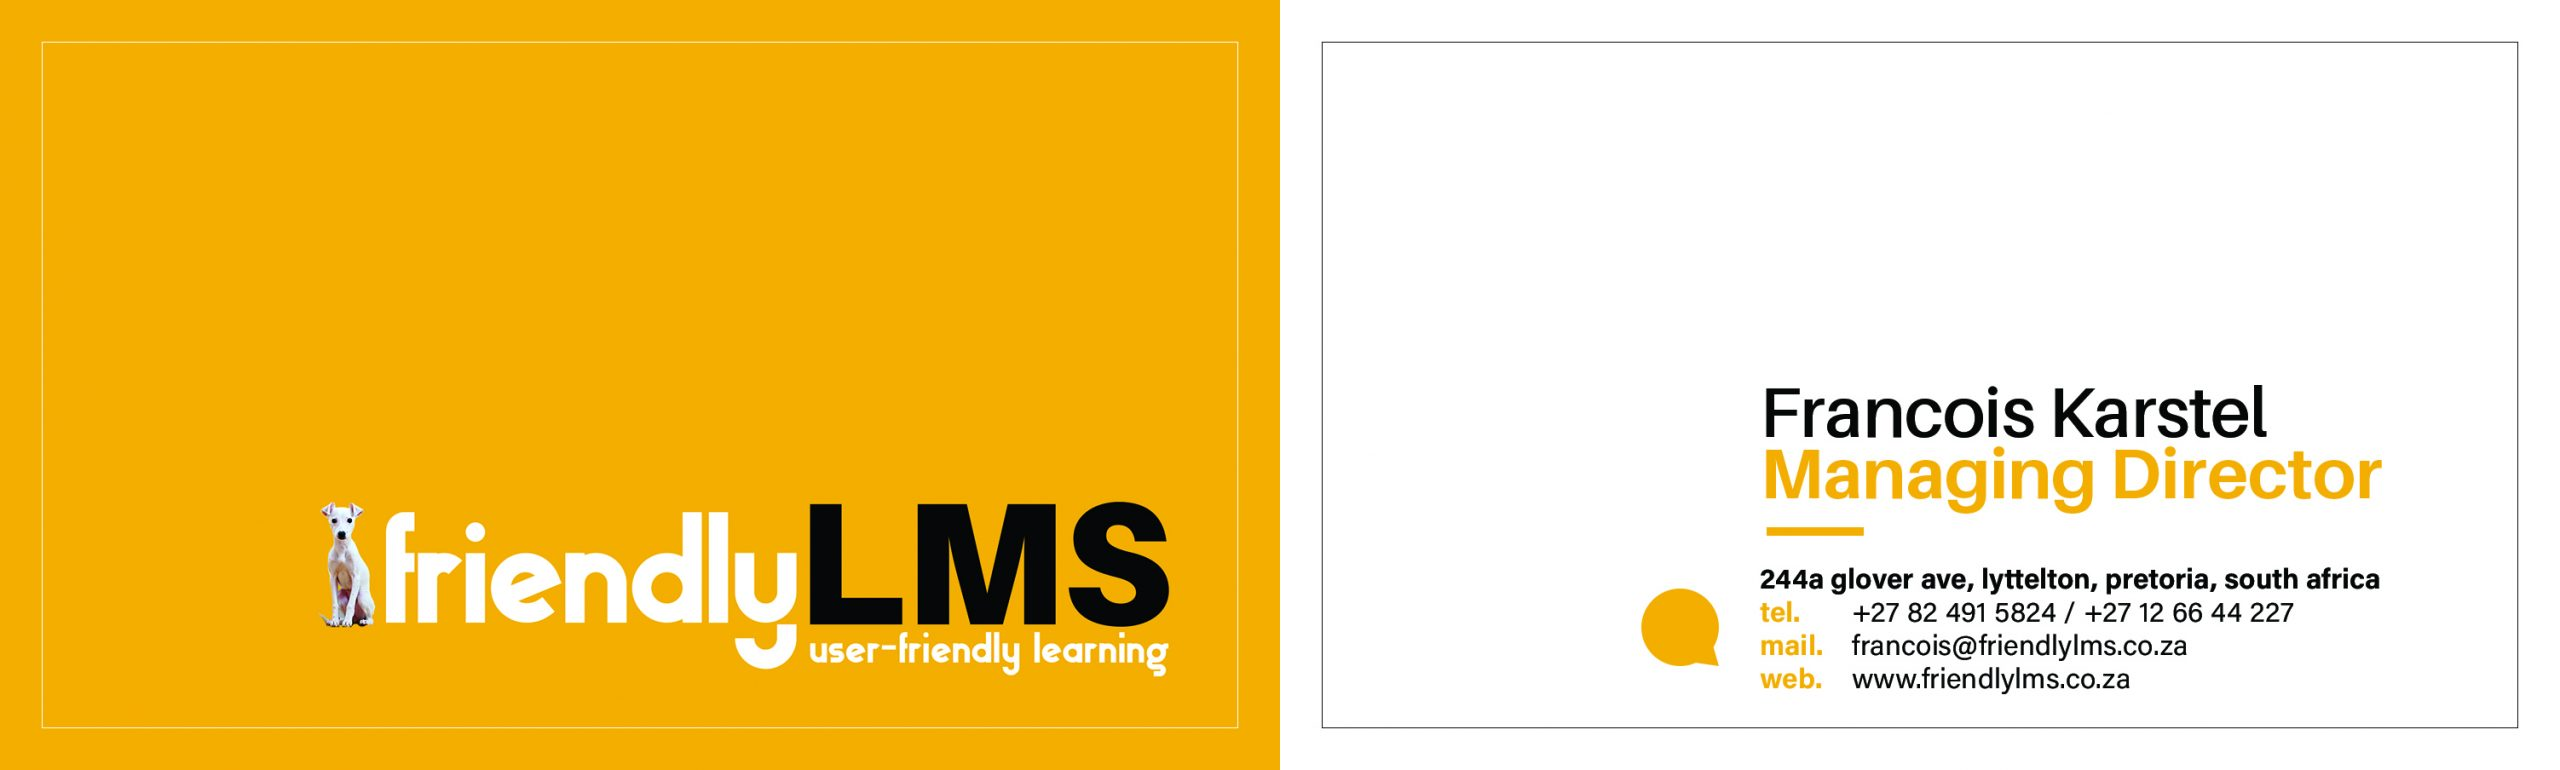 Friendly LMS Business Card Graphic design